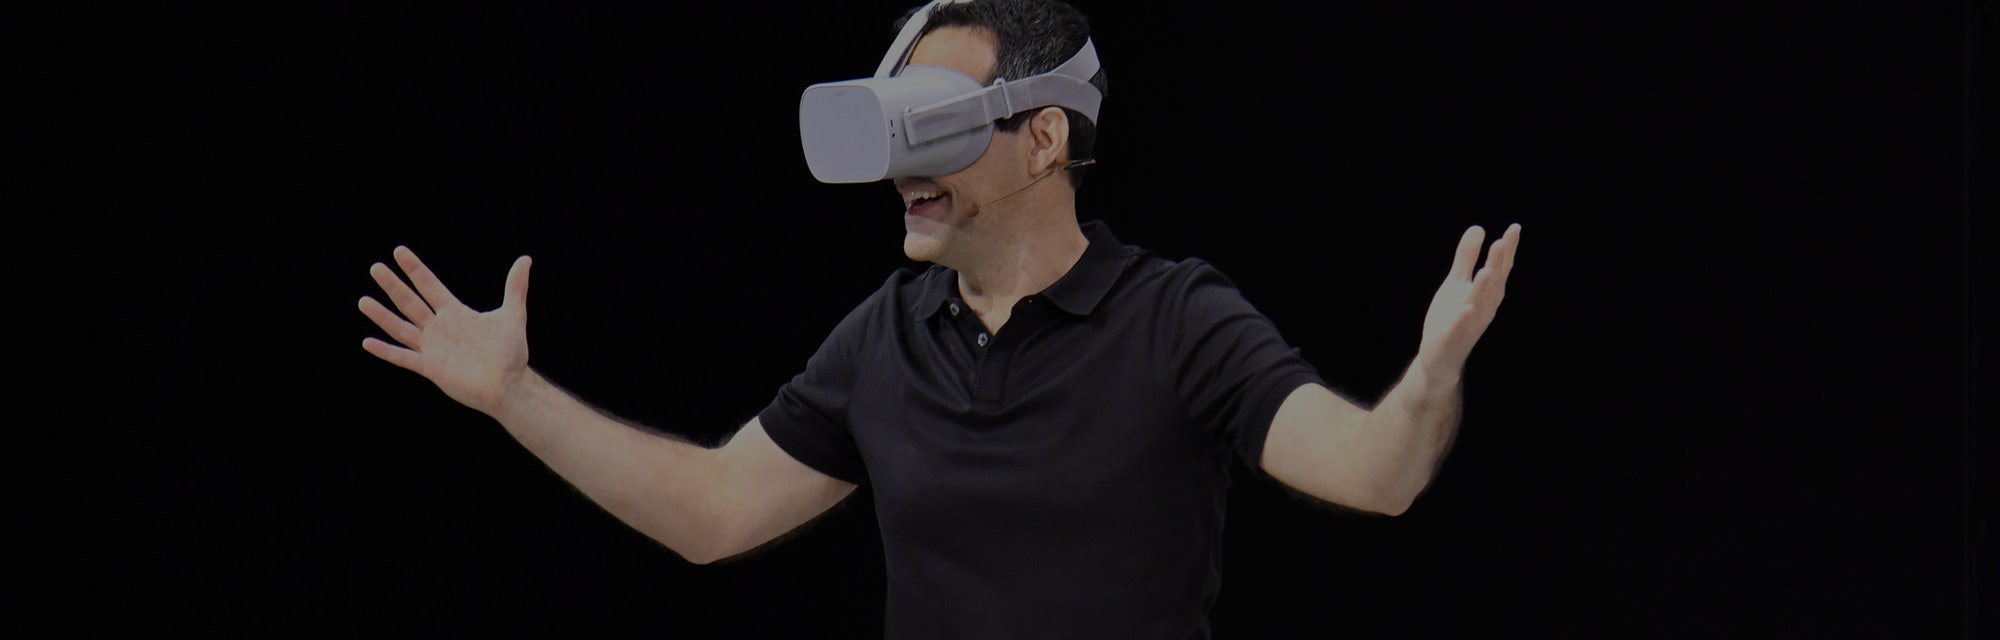 Facebook vice president of VR Hugo Barra demonstrates how to use the new Oculus Go during the annual F8 summit at the San Jose McEnery Convention Center in San Jose, California on May 1, 2018. - Facebook chief Mark Zuckerberg announced the world's largest social network will soon include a new dating feature -- while vowing to make privacy protection its top priority in the wake of the Cambridge Analytica scandal. (Photo by JOSH EDELSON / AFP)        (Photo credit should read JOSH EDELSON/AFP via Getty Images)